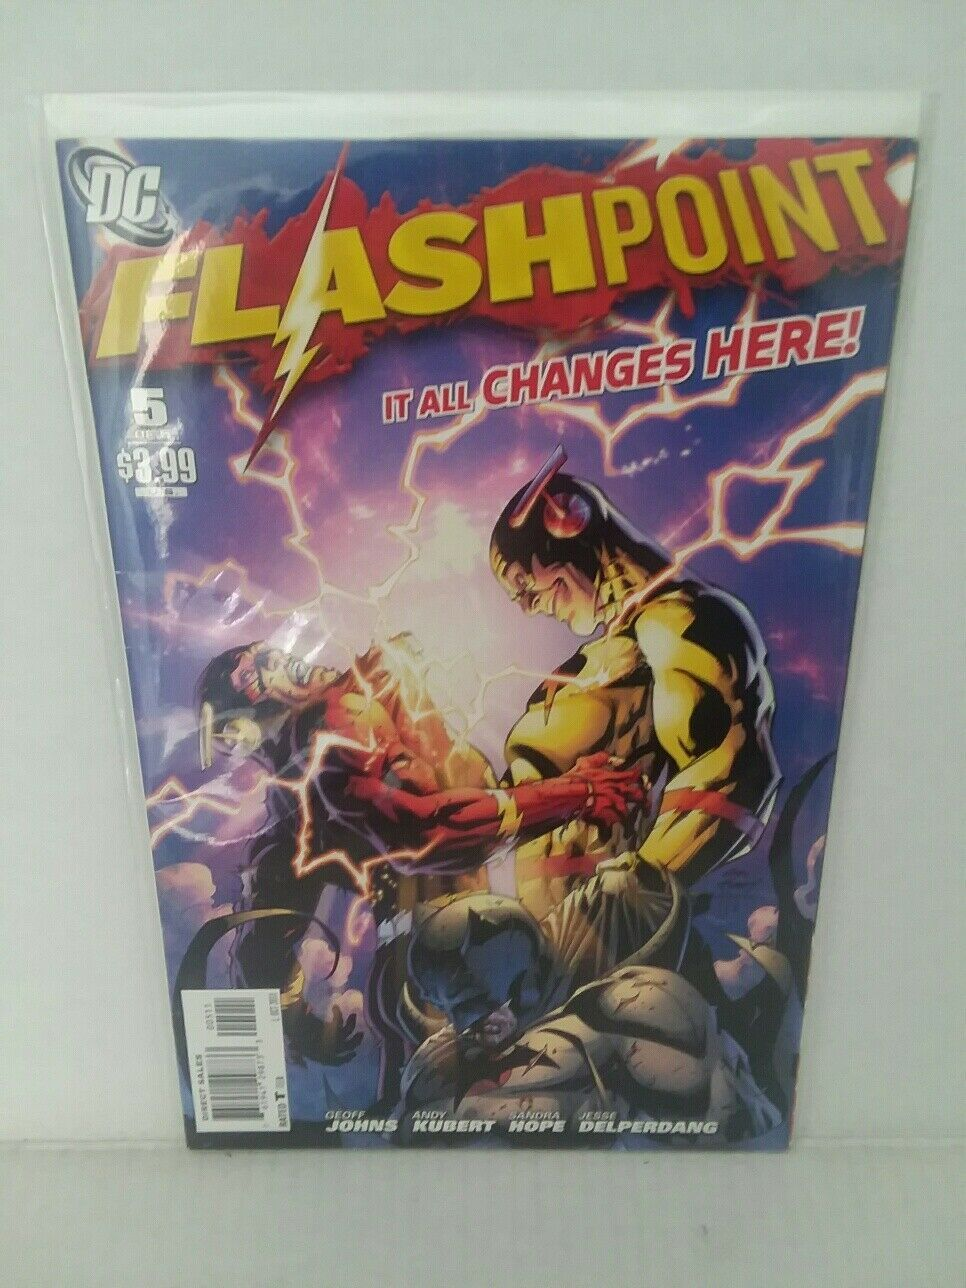 THE FLASHPOINT #5 AND DC UNIVERSE REBIRTH: ONESHOT - FREE SHIPPING